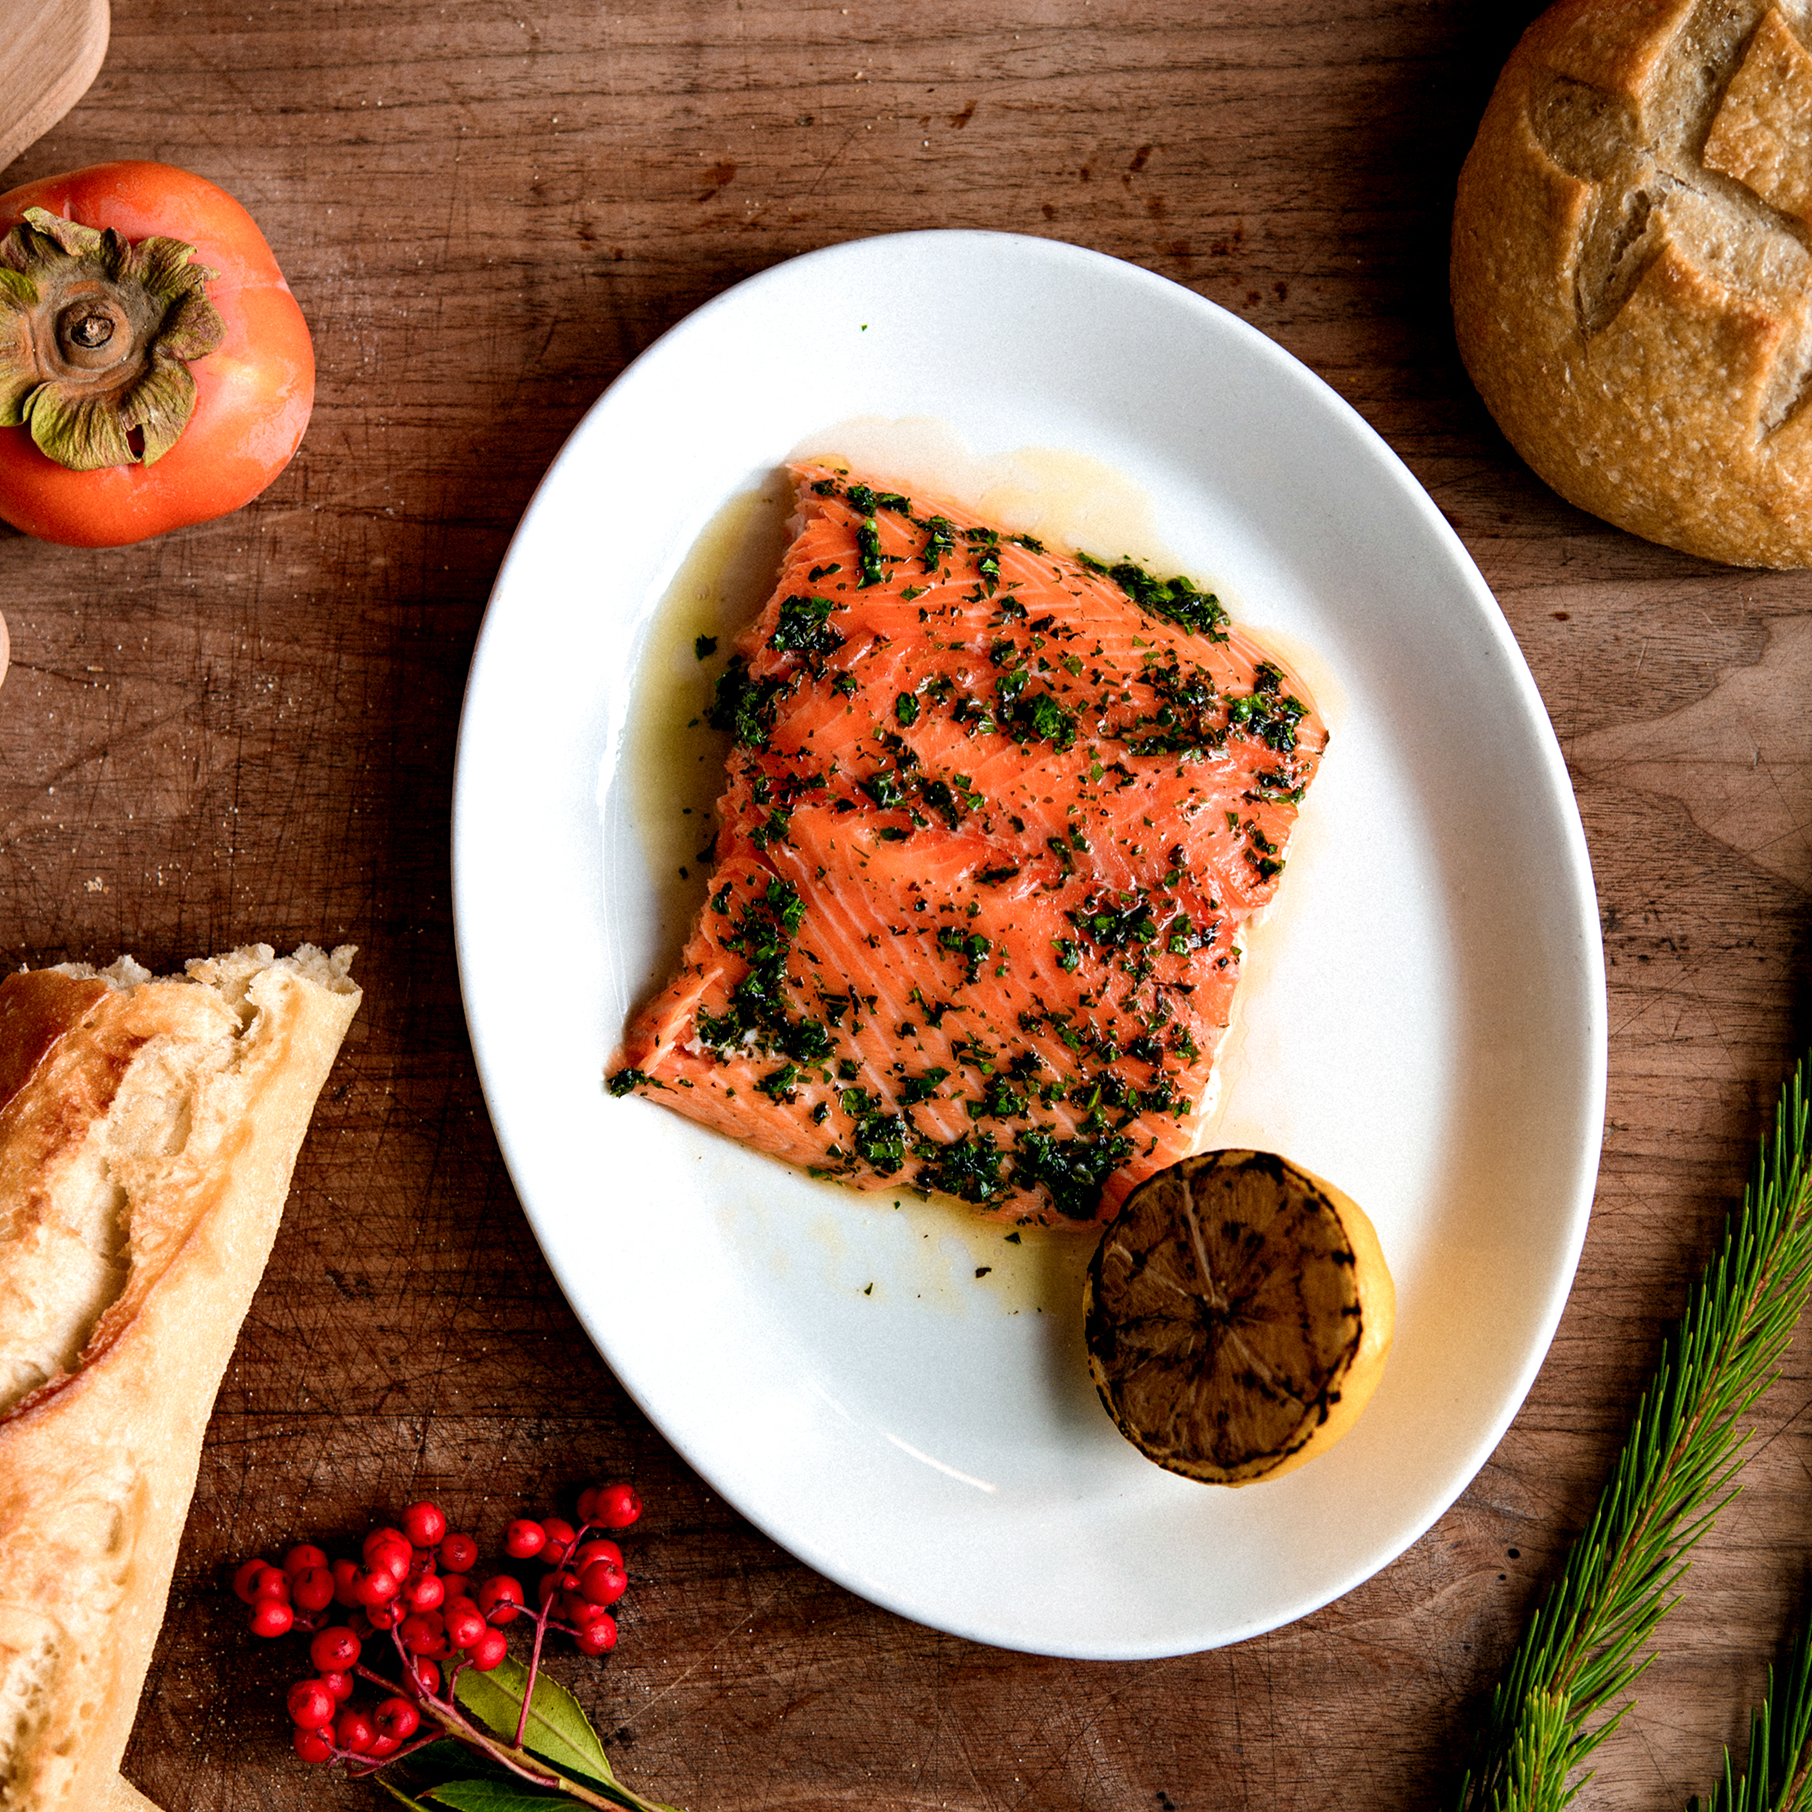 Roasted Salmon With Vibrant Herb Sauce